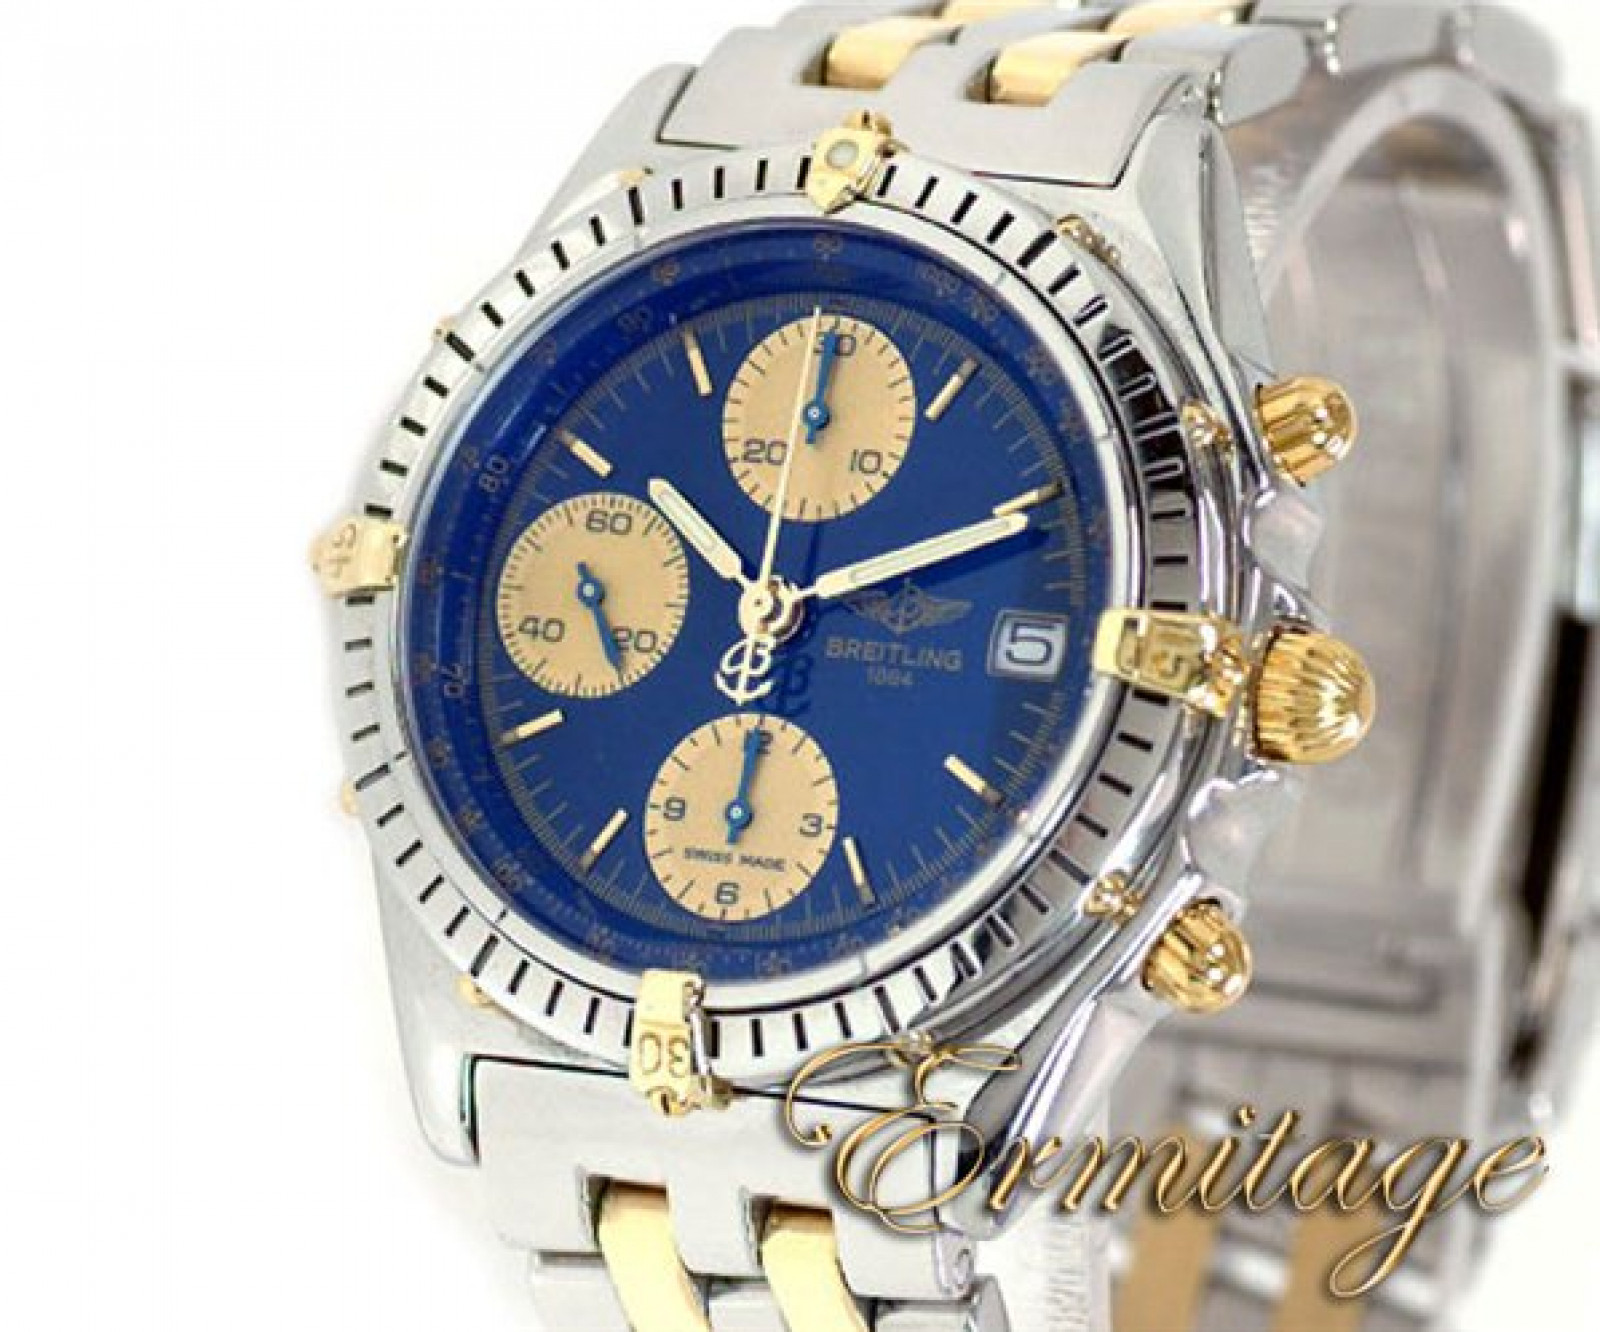 Breitling Chronomat B13048 Gold & Steel